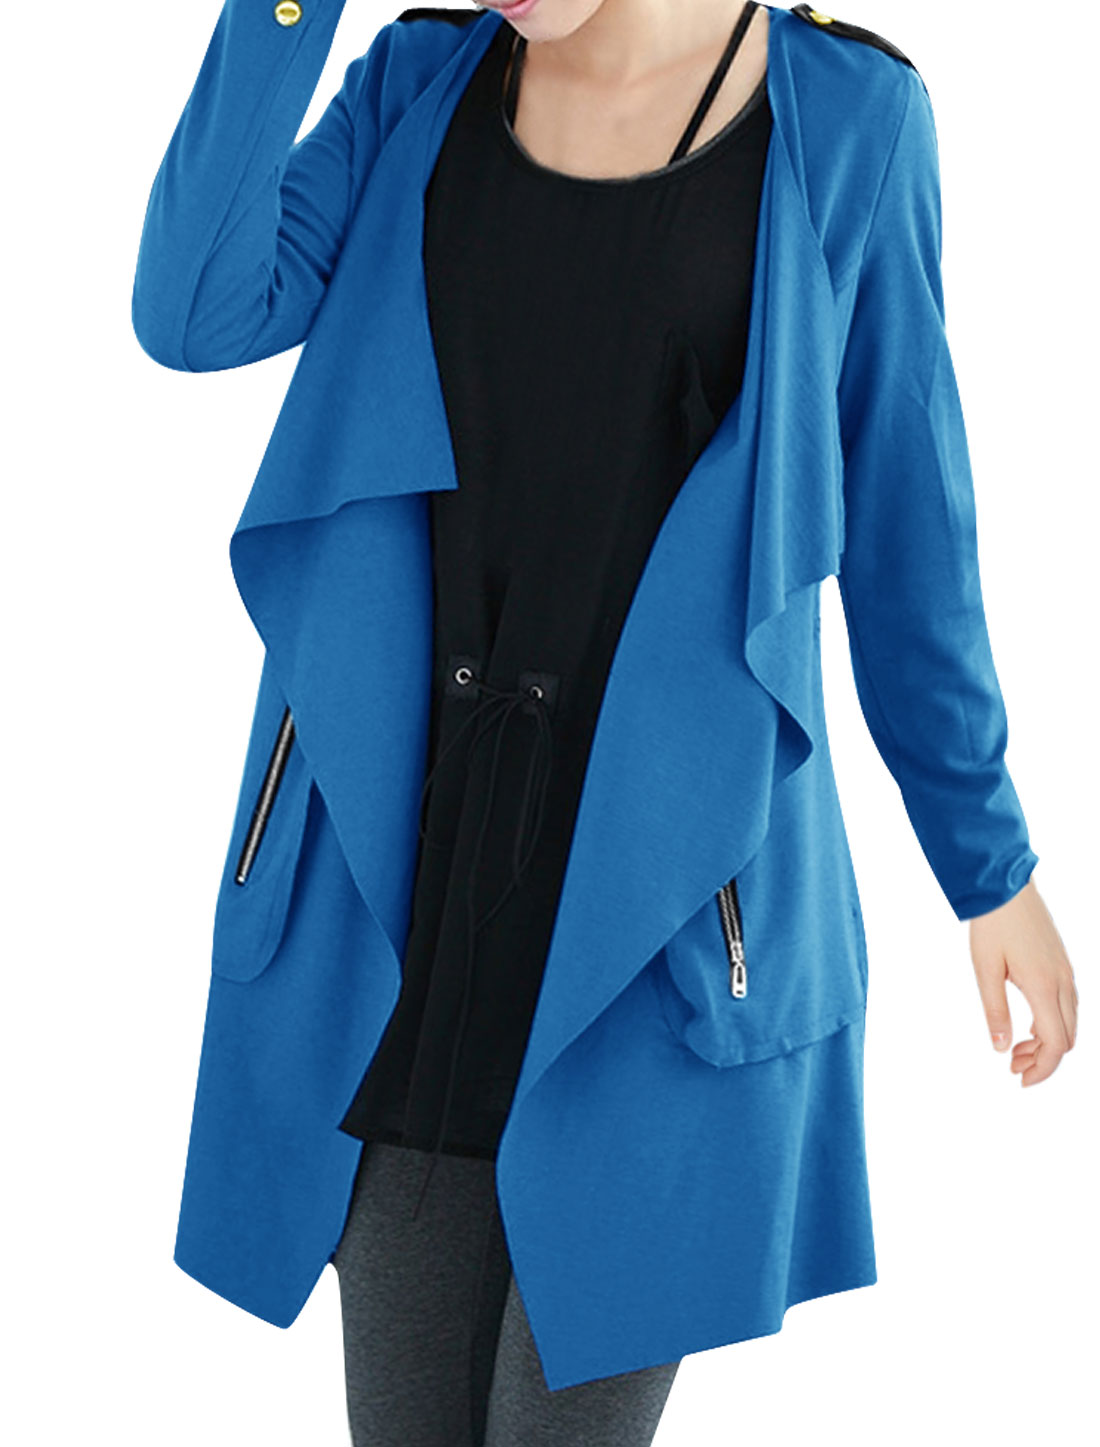 Women Open Front Long Sleeve Zip Up Pockets Jacket Turquoise S